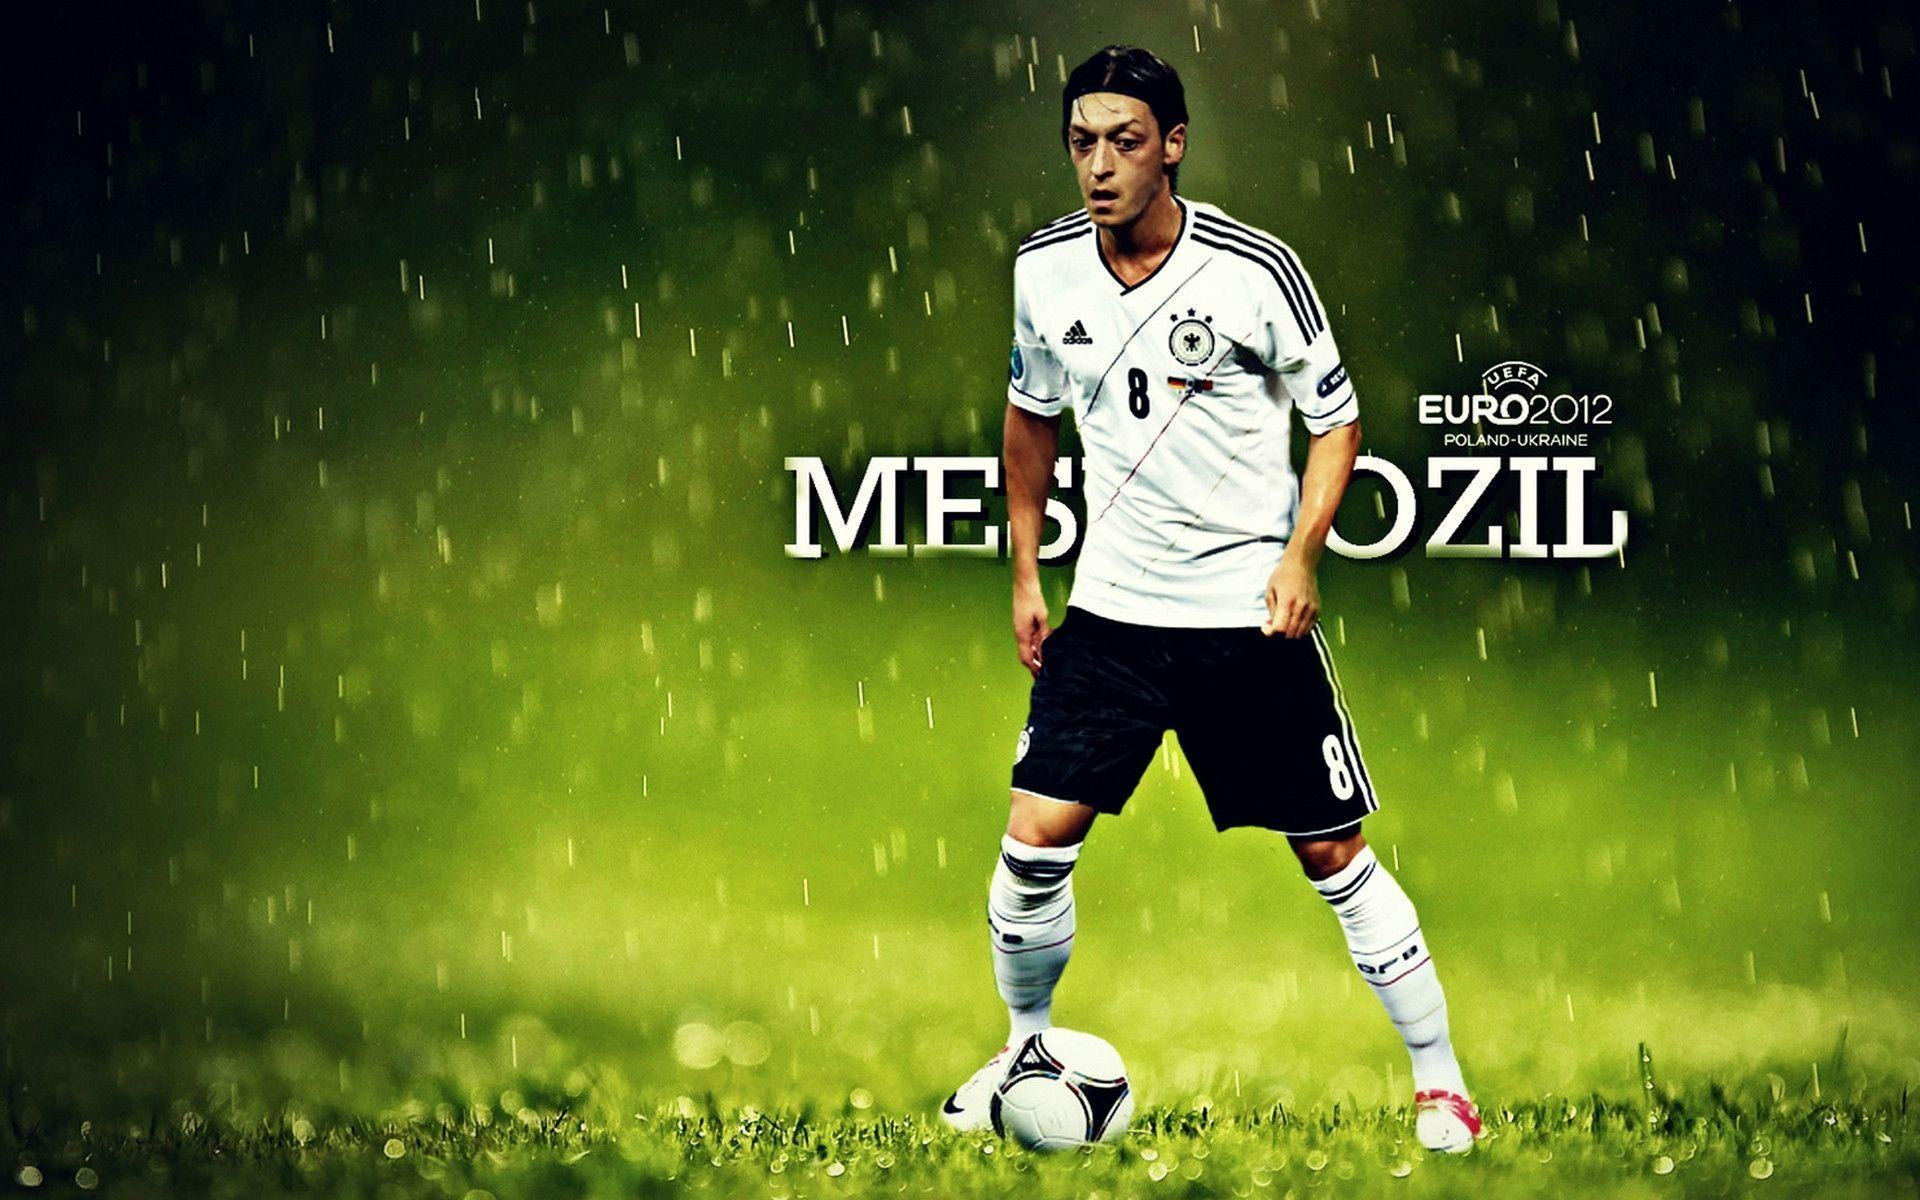 Mesut Ozil Sport Football Backgrounds Wallpapers